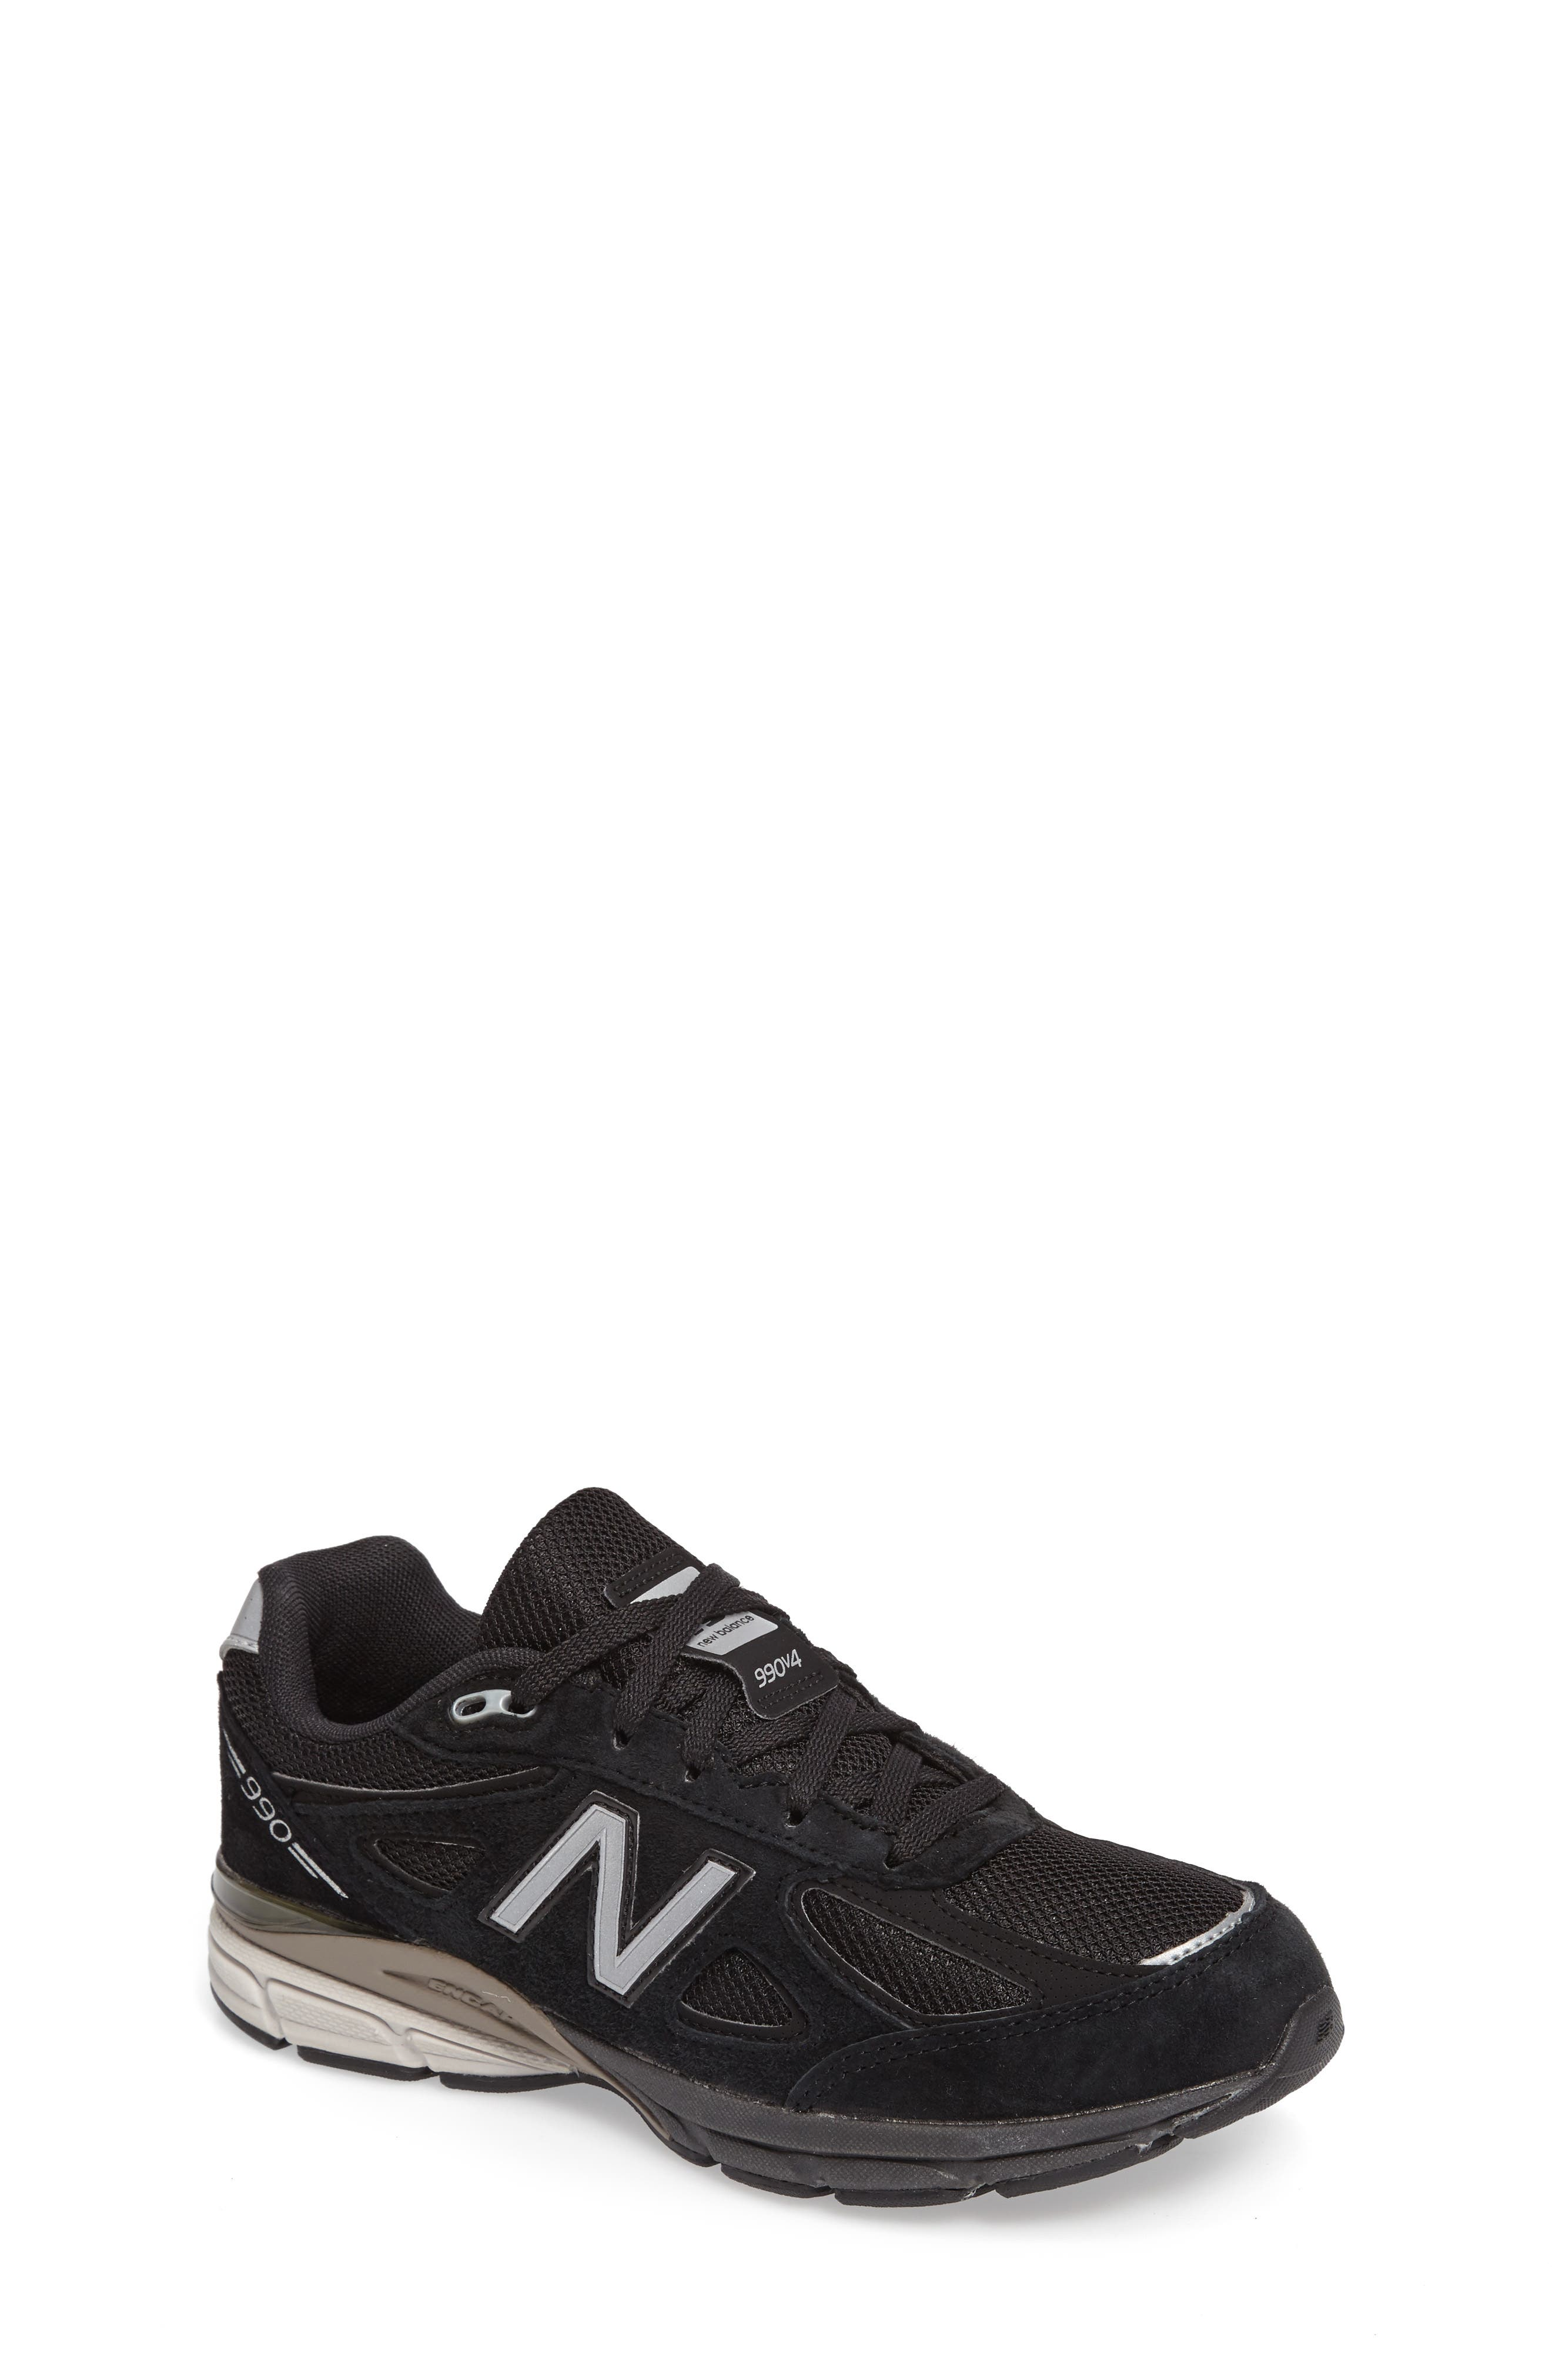 New Balance 990v4 Sneaker (Big Kid)